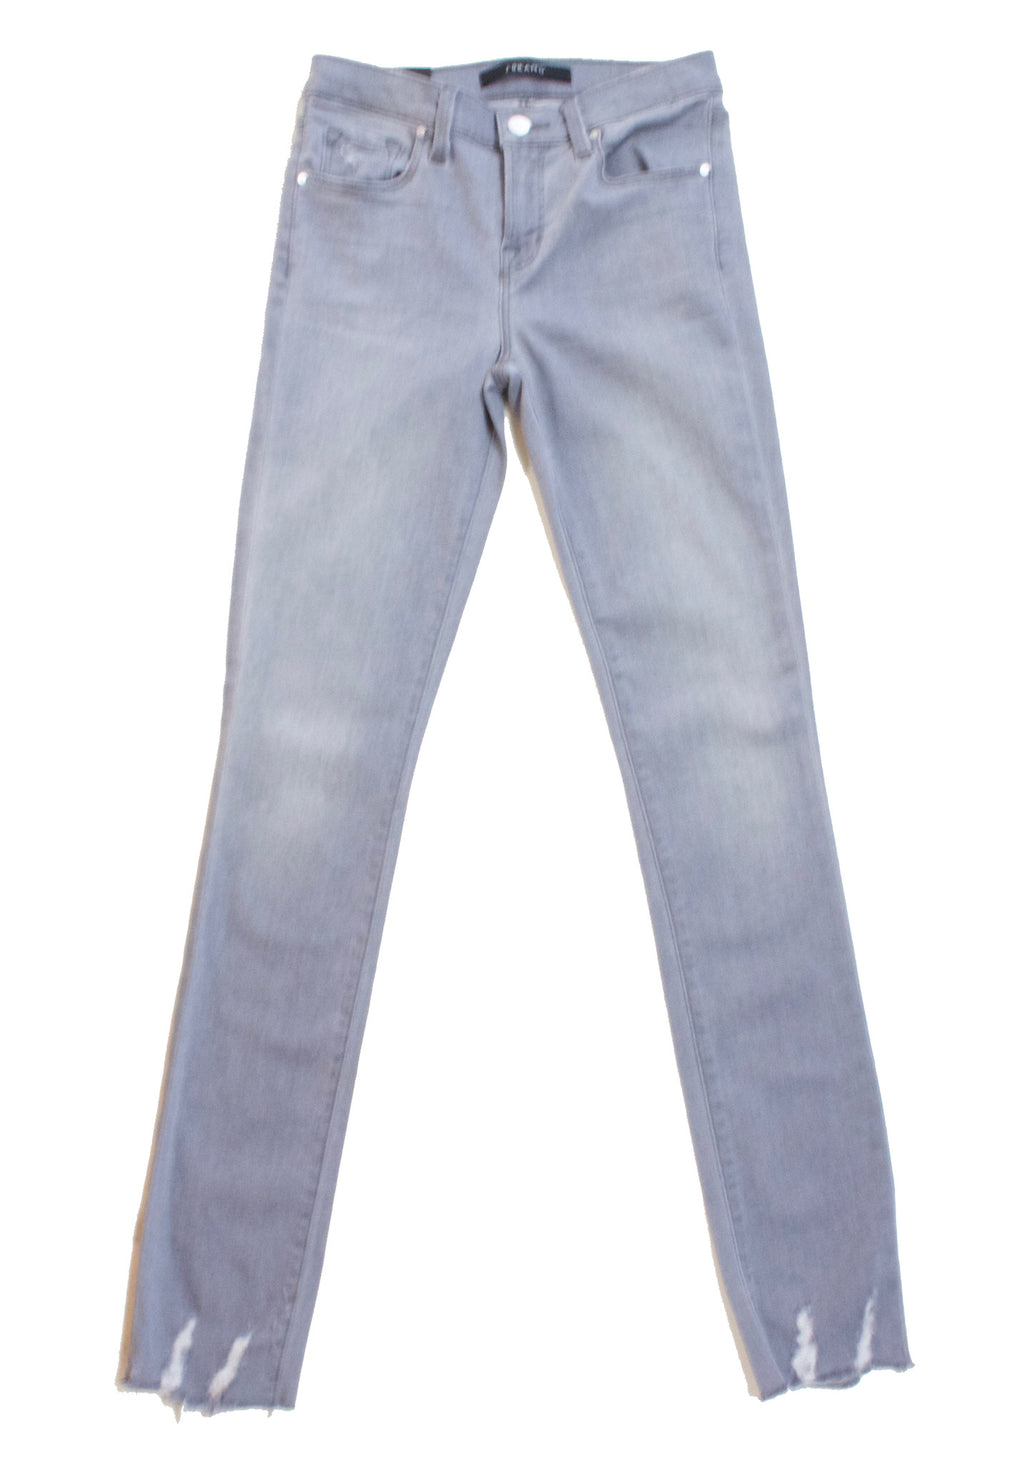 811 Mid Rise Skinny with Raw Hem in Yarn Dye Grey